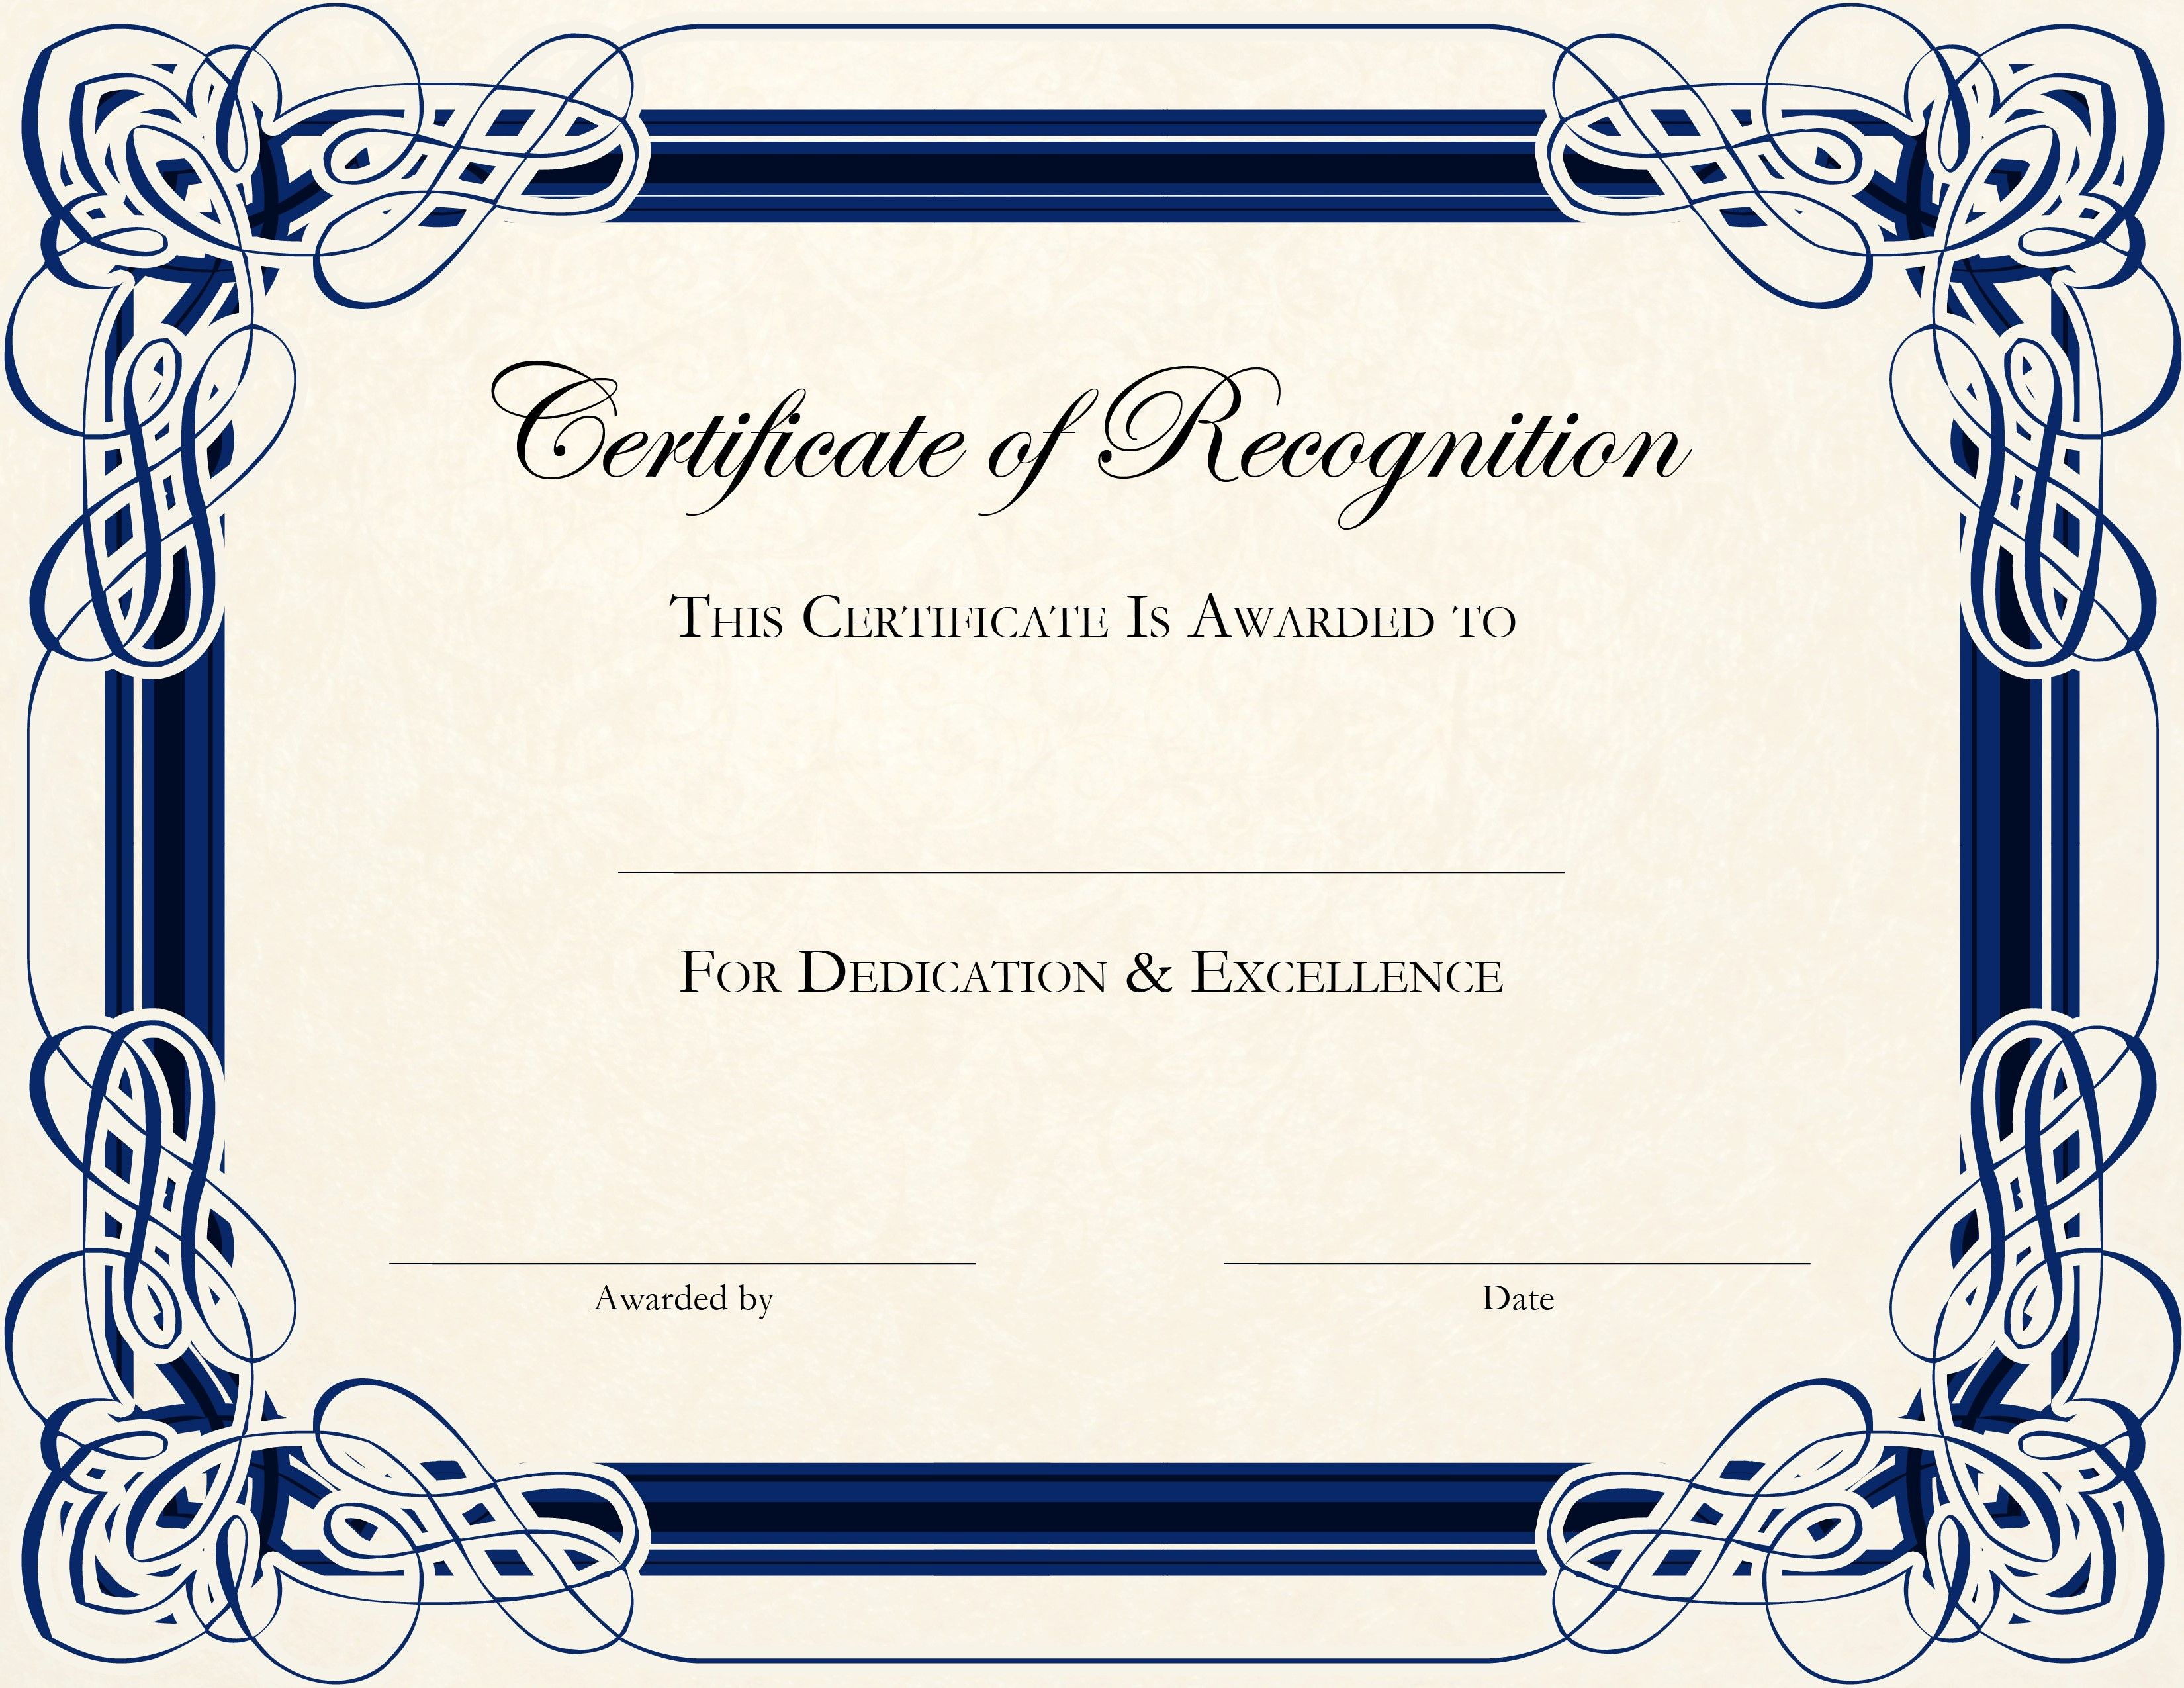 Free Printable Certificate Templates For Teachers | Besttemplate123 - Certificate Of Completion Template Free Printable